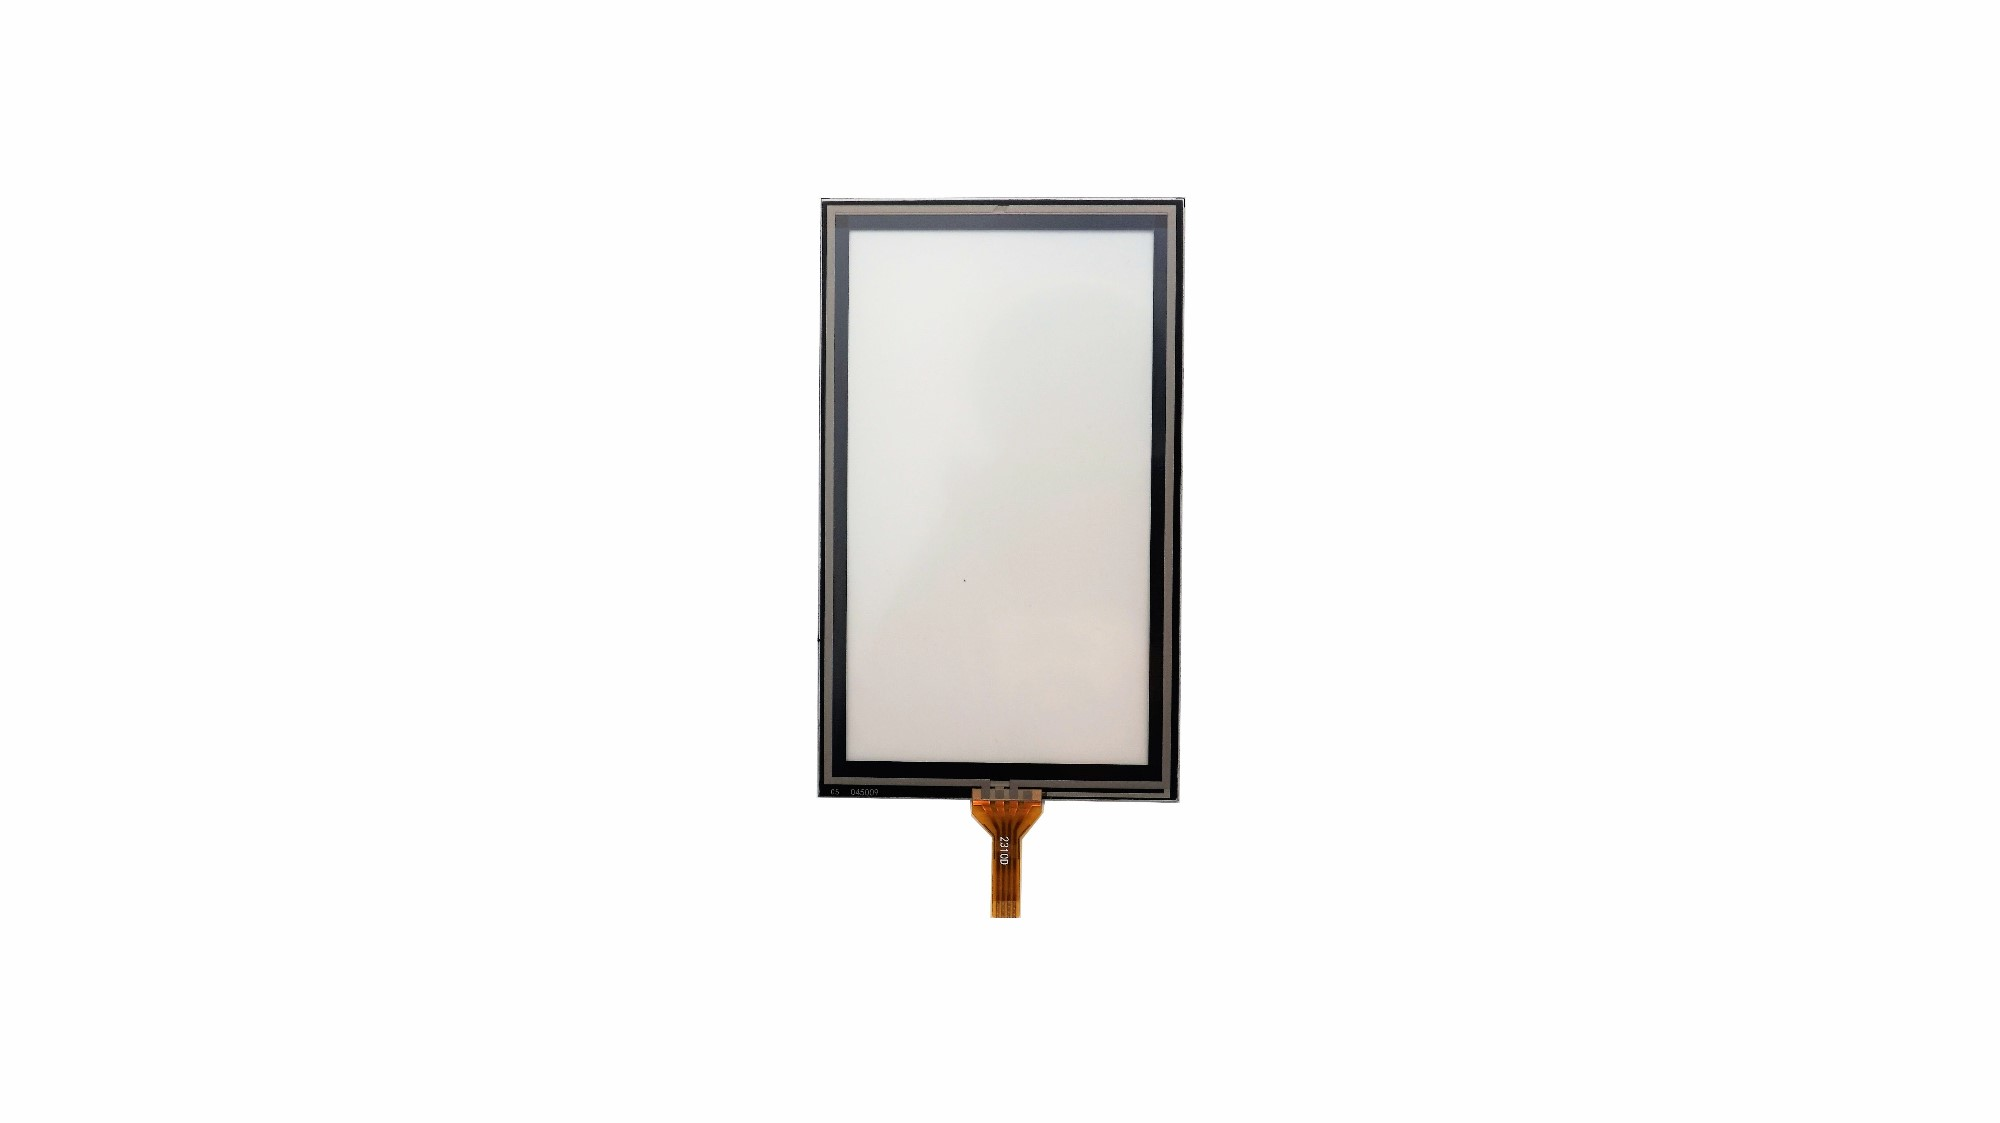 4-Wire Resistive Touch Screen 4.5 Inch With Controller